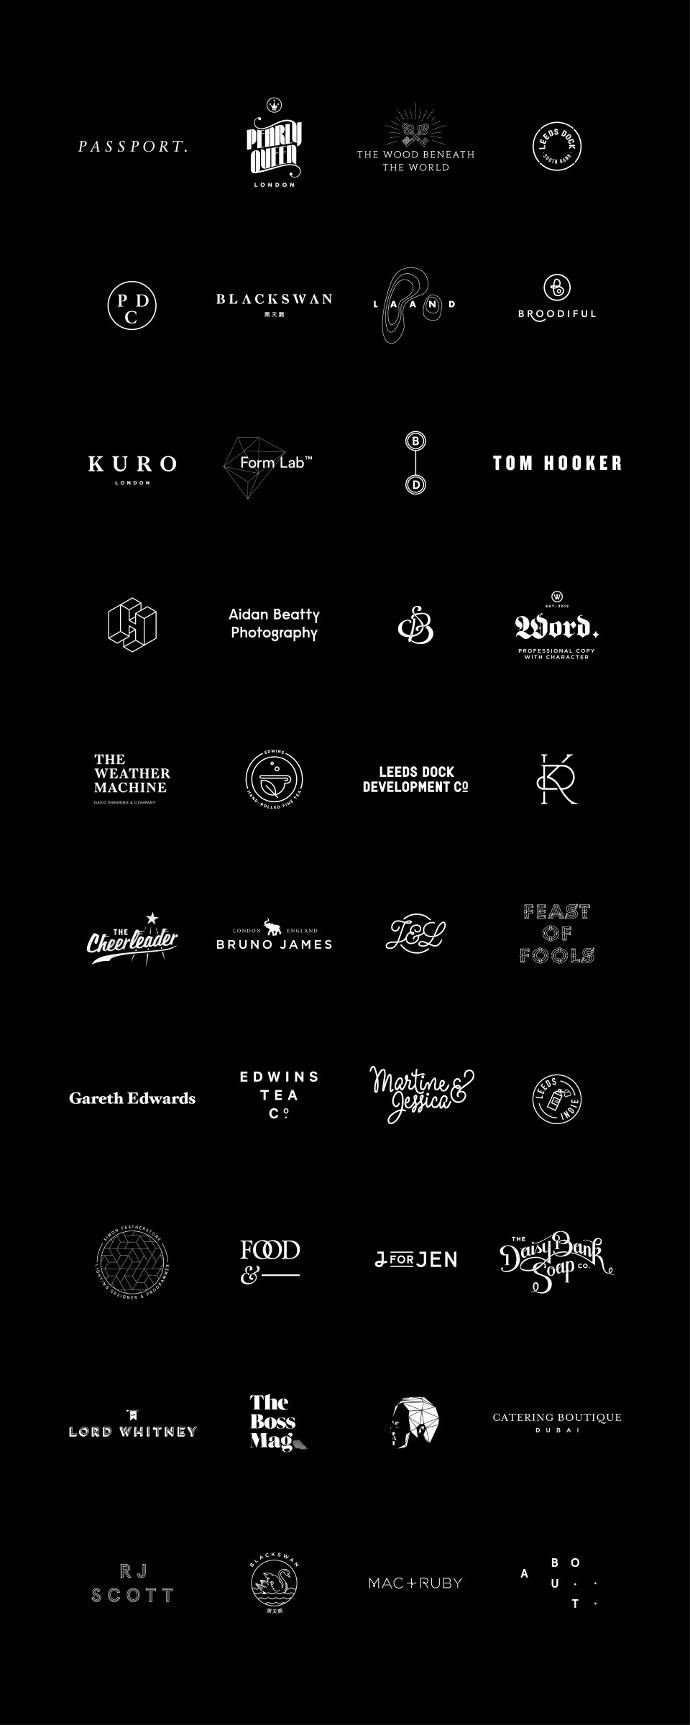 Carefully crafted identities and design by Passport